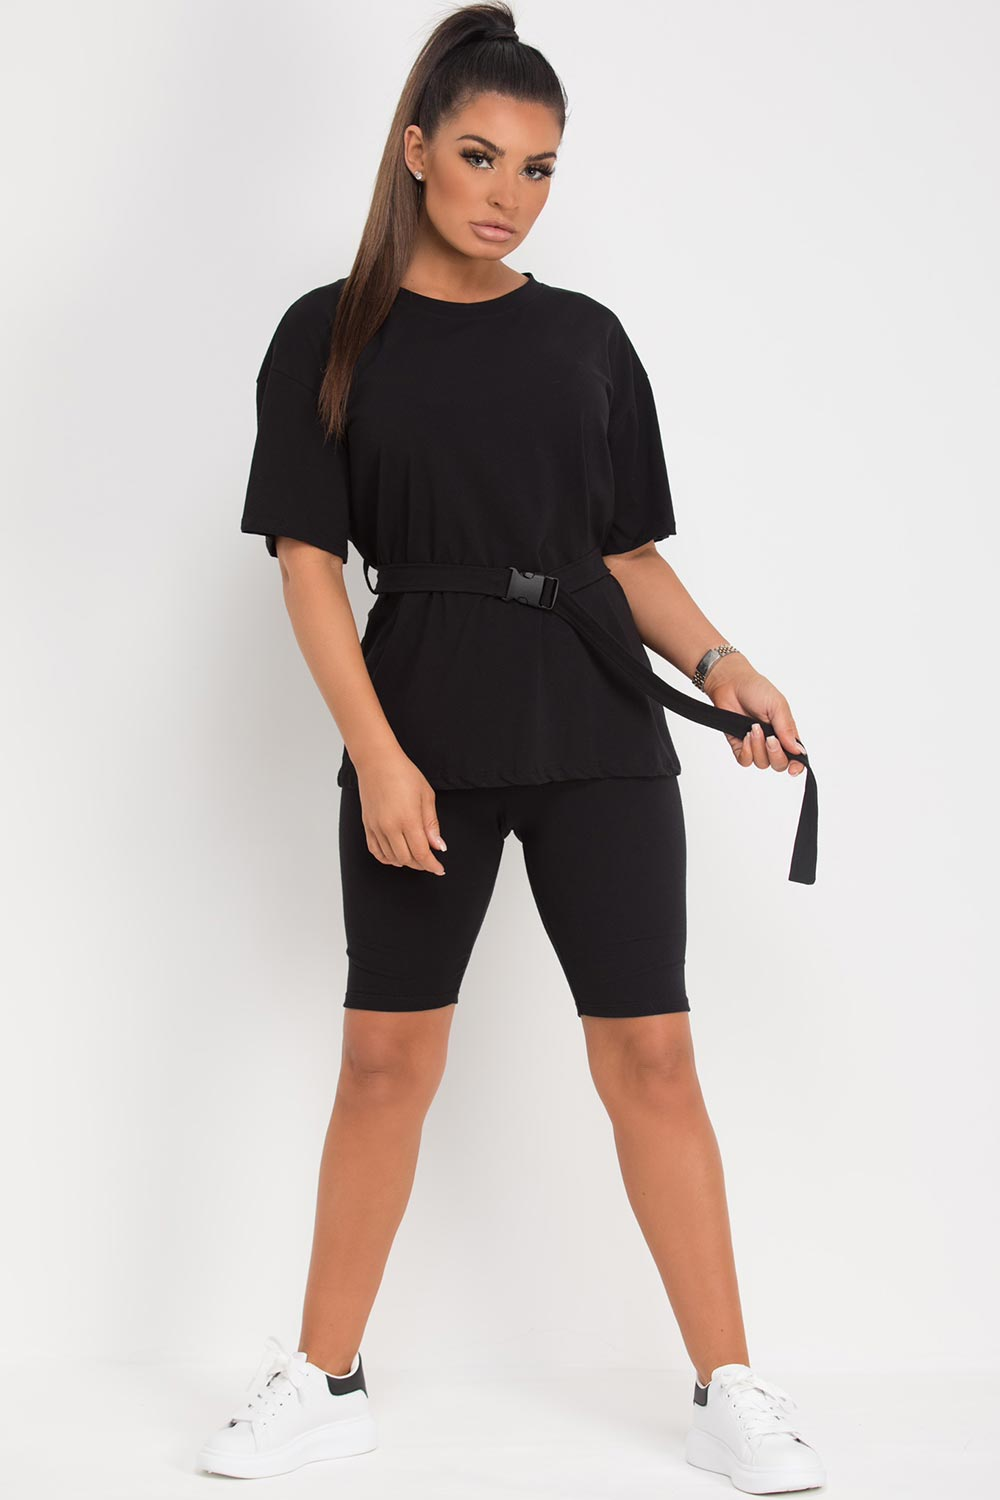 utility belt top and cycling shorts set black